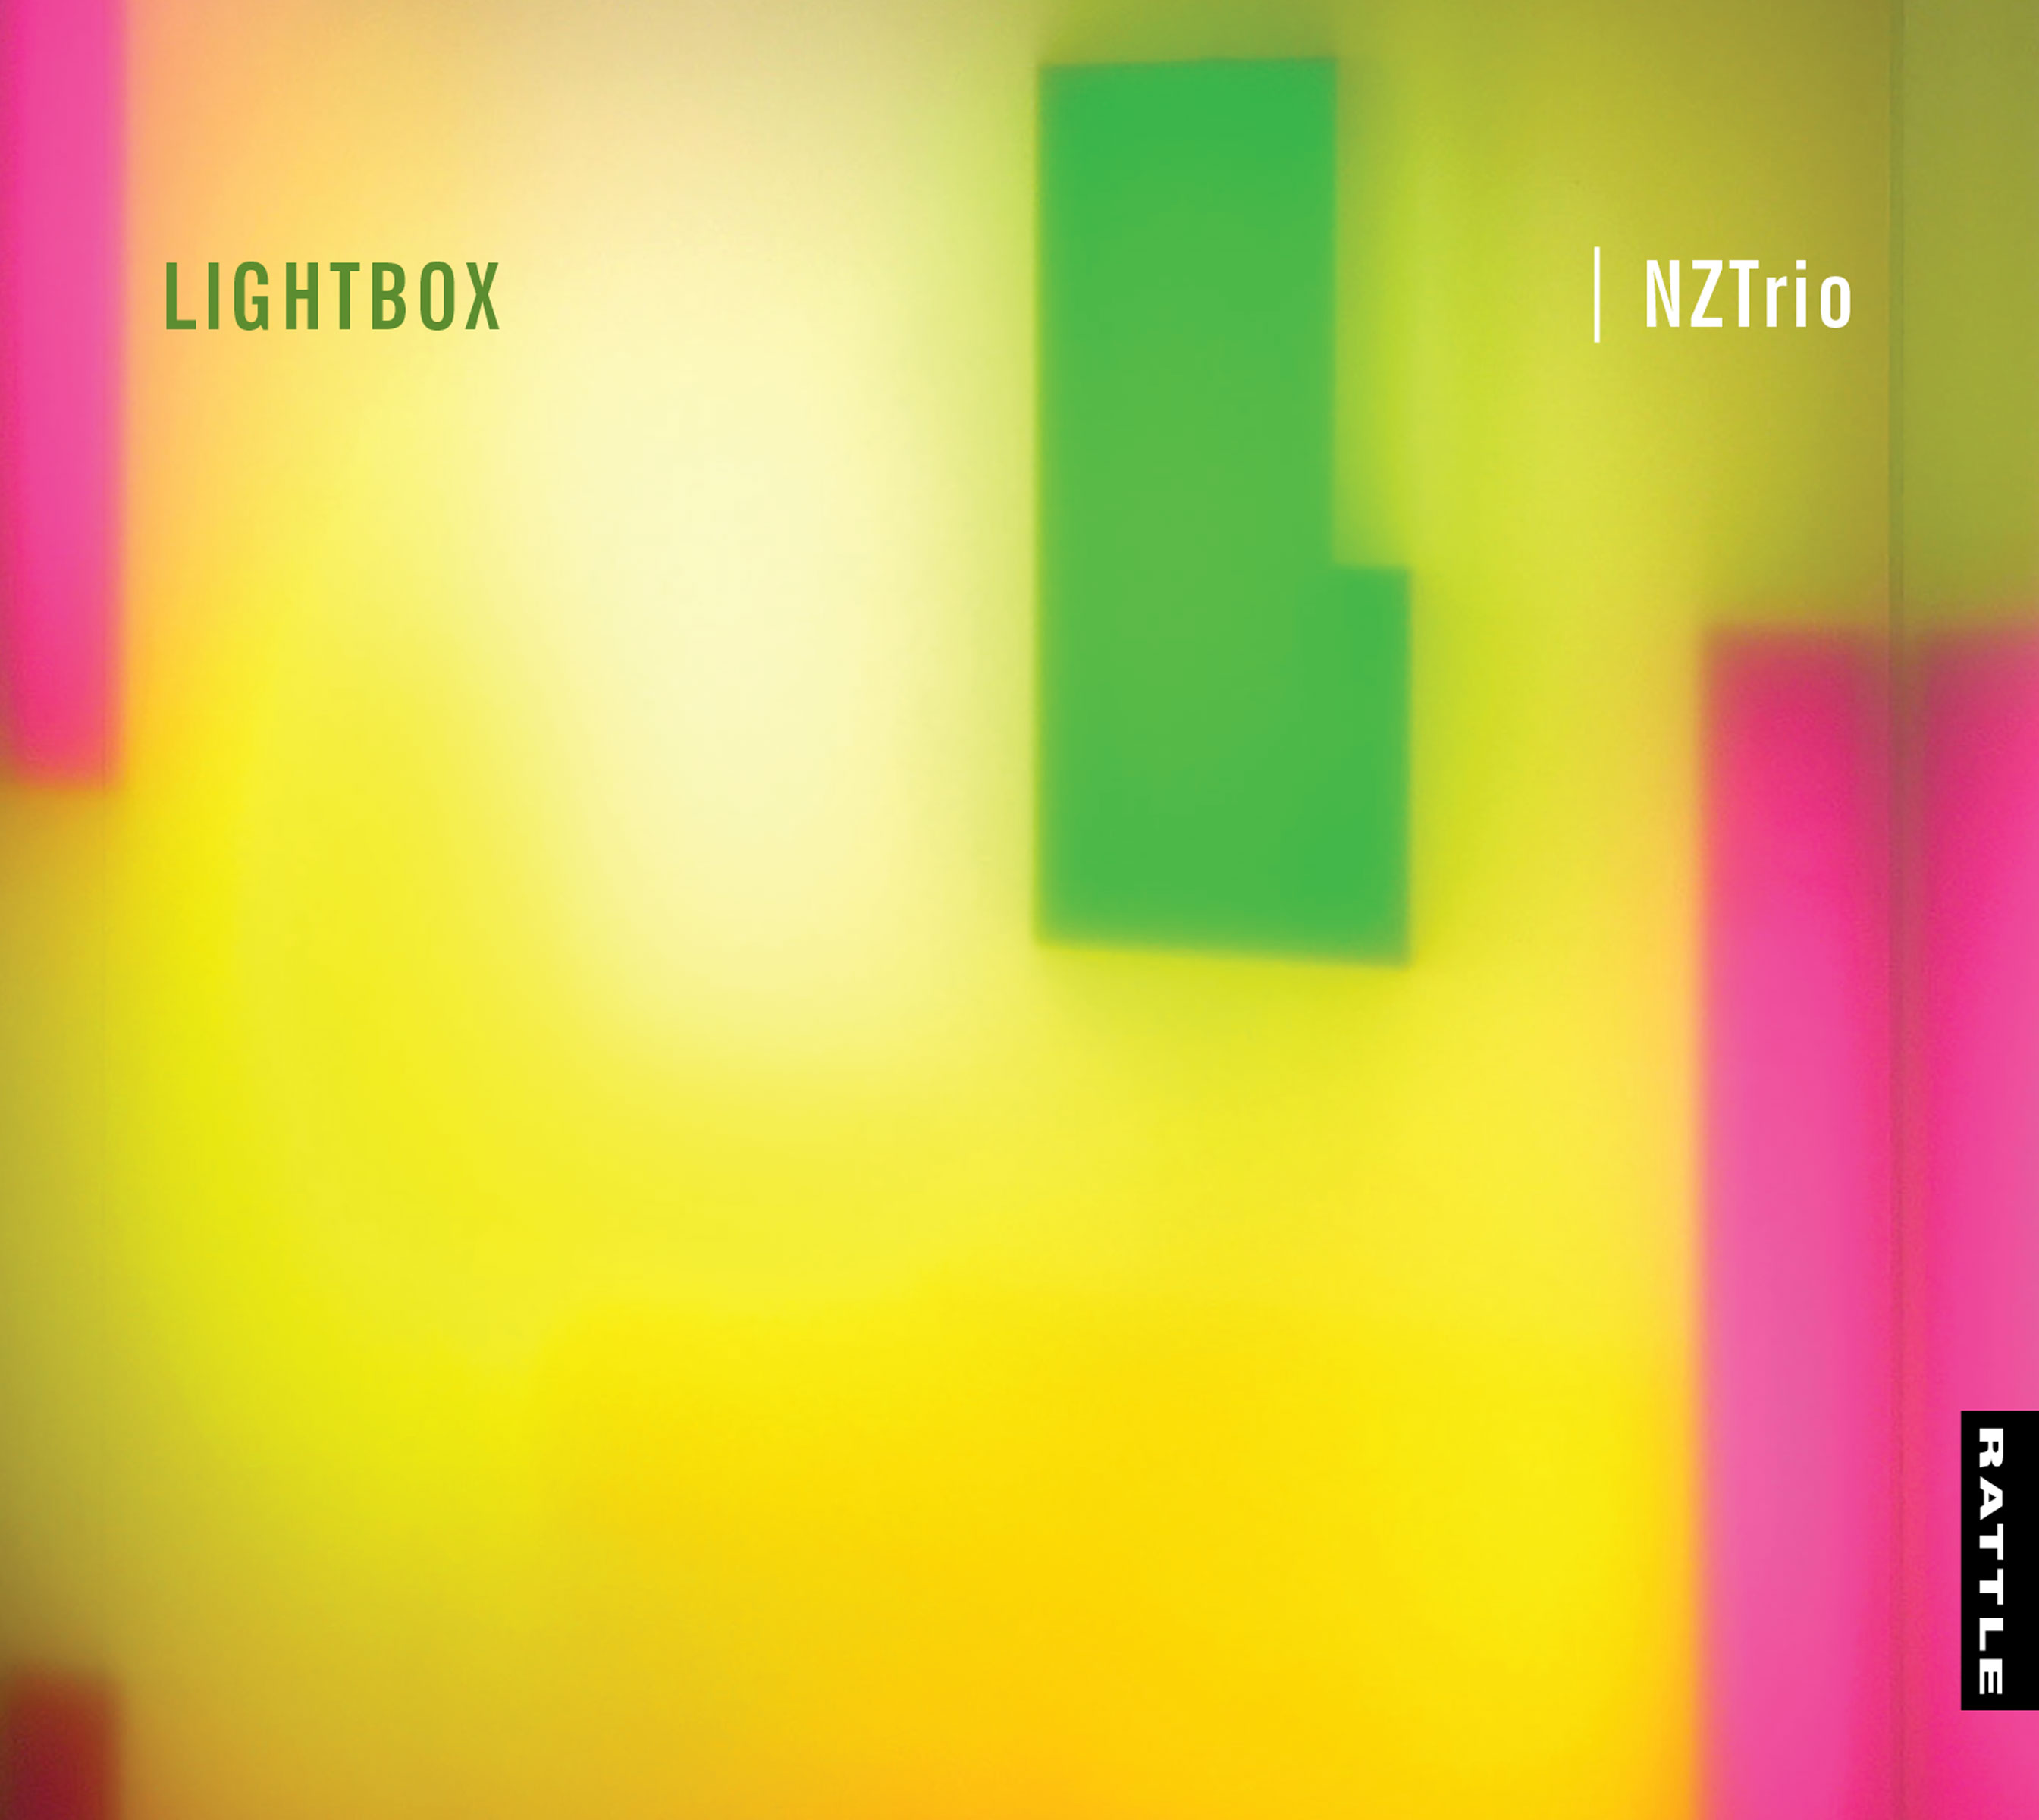 NZTrio | Lightbox - downloadable MP3 ALBUM